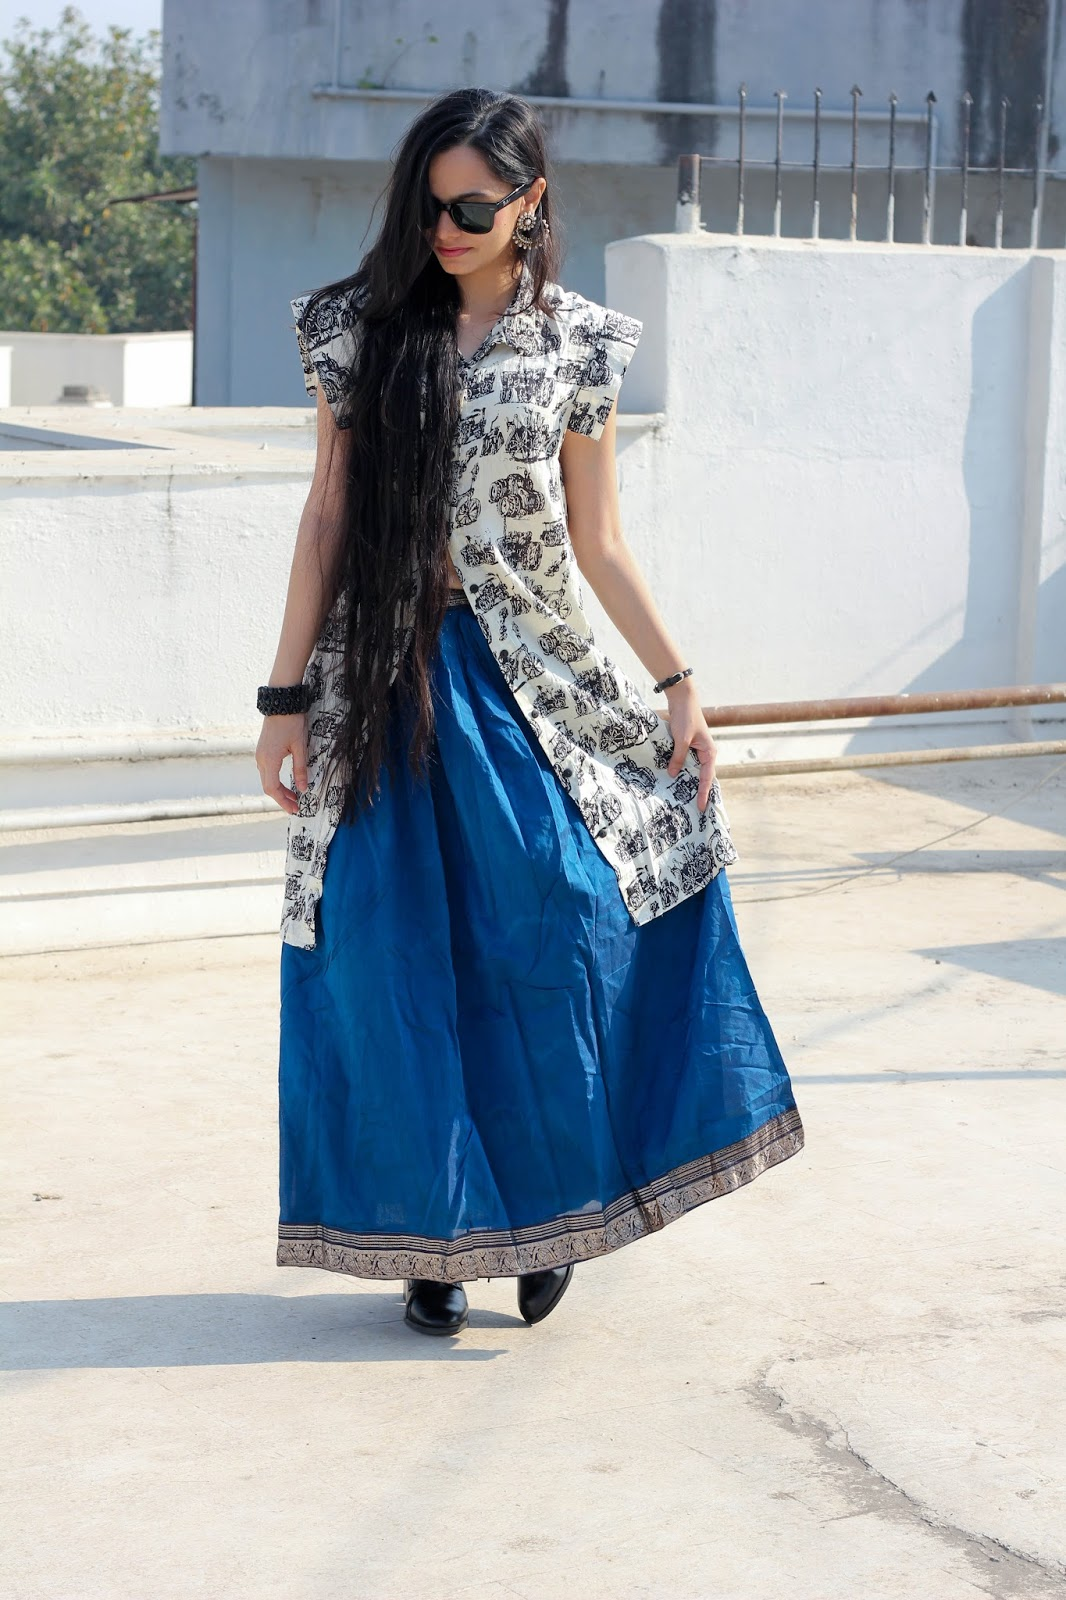 Indian Fashion Girl Dress Up